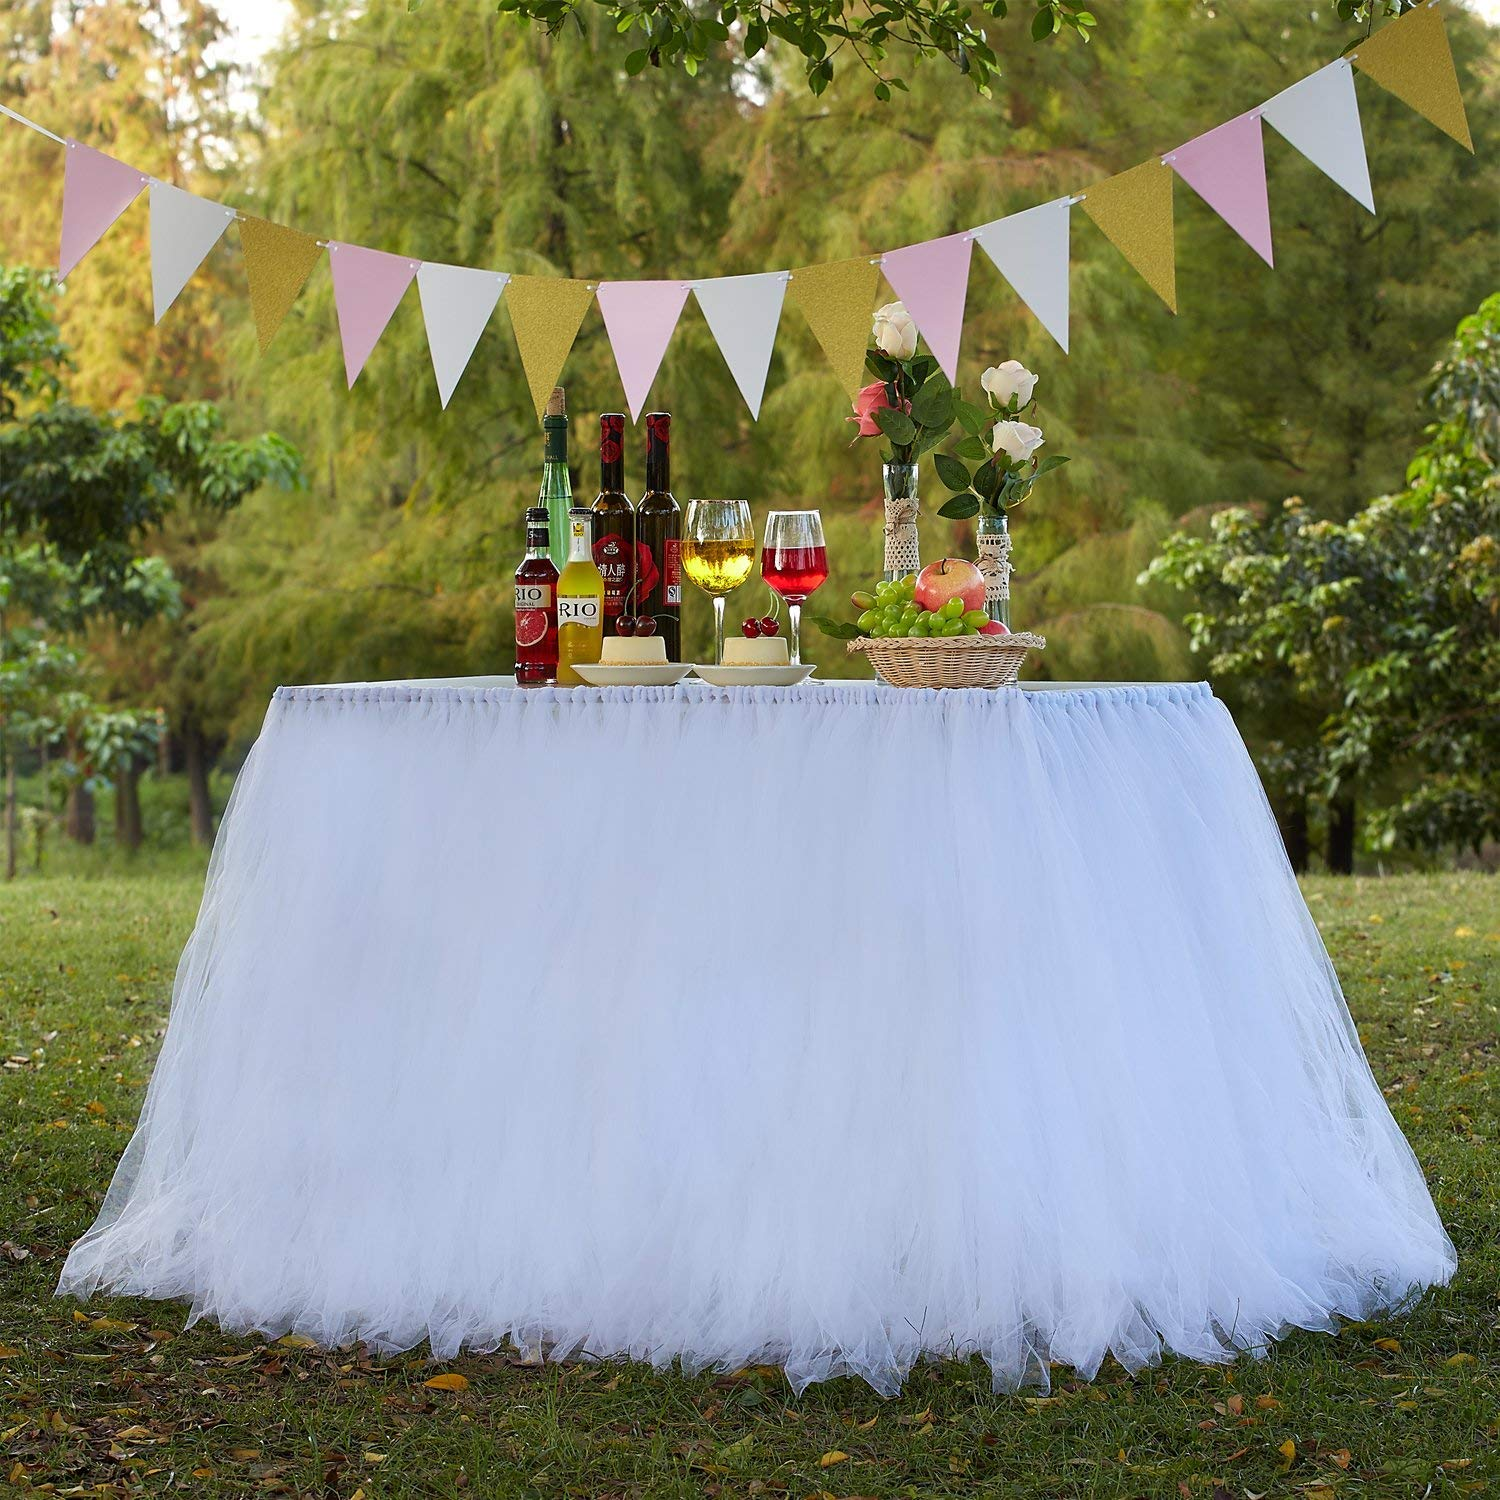 MACTING Handmade Tutu Tulle Table Skirt Cover Improved for Girl Princess Birthday Party Baby Showers Weddings Holiday Parties Home Decoration, 47''-60'' Long 32'' High (White)